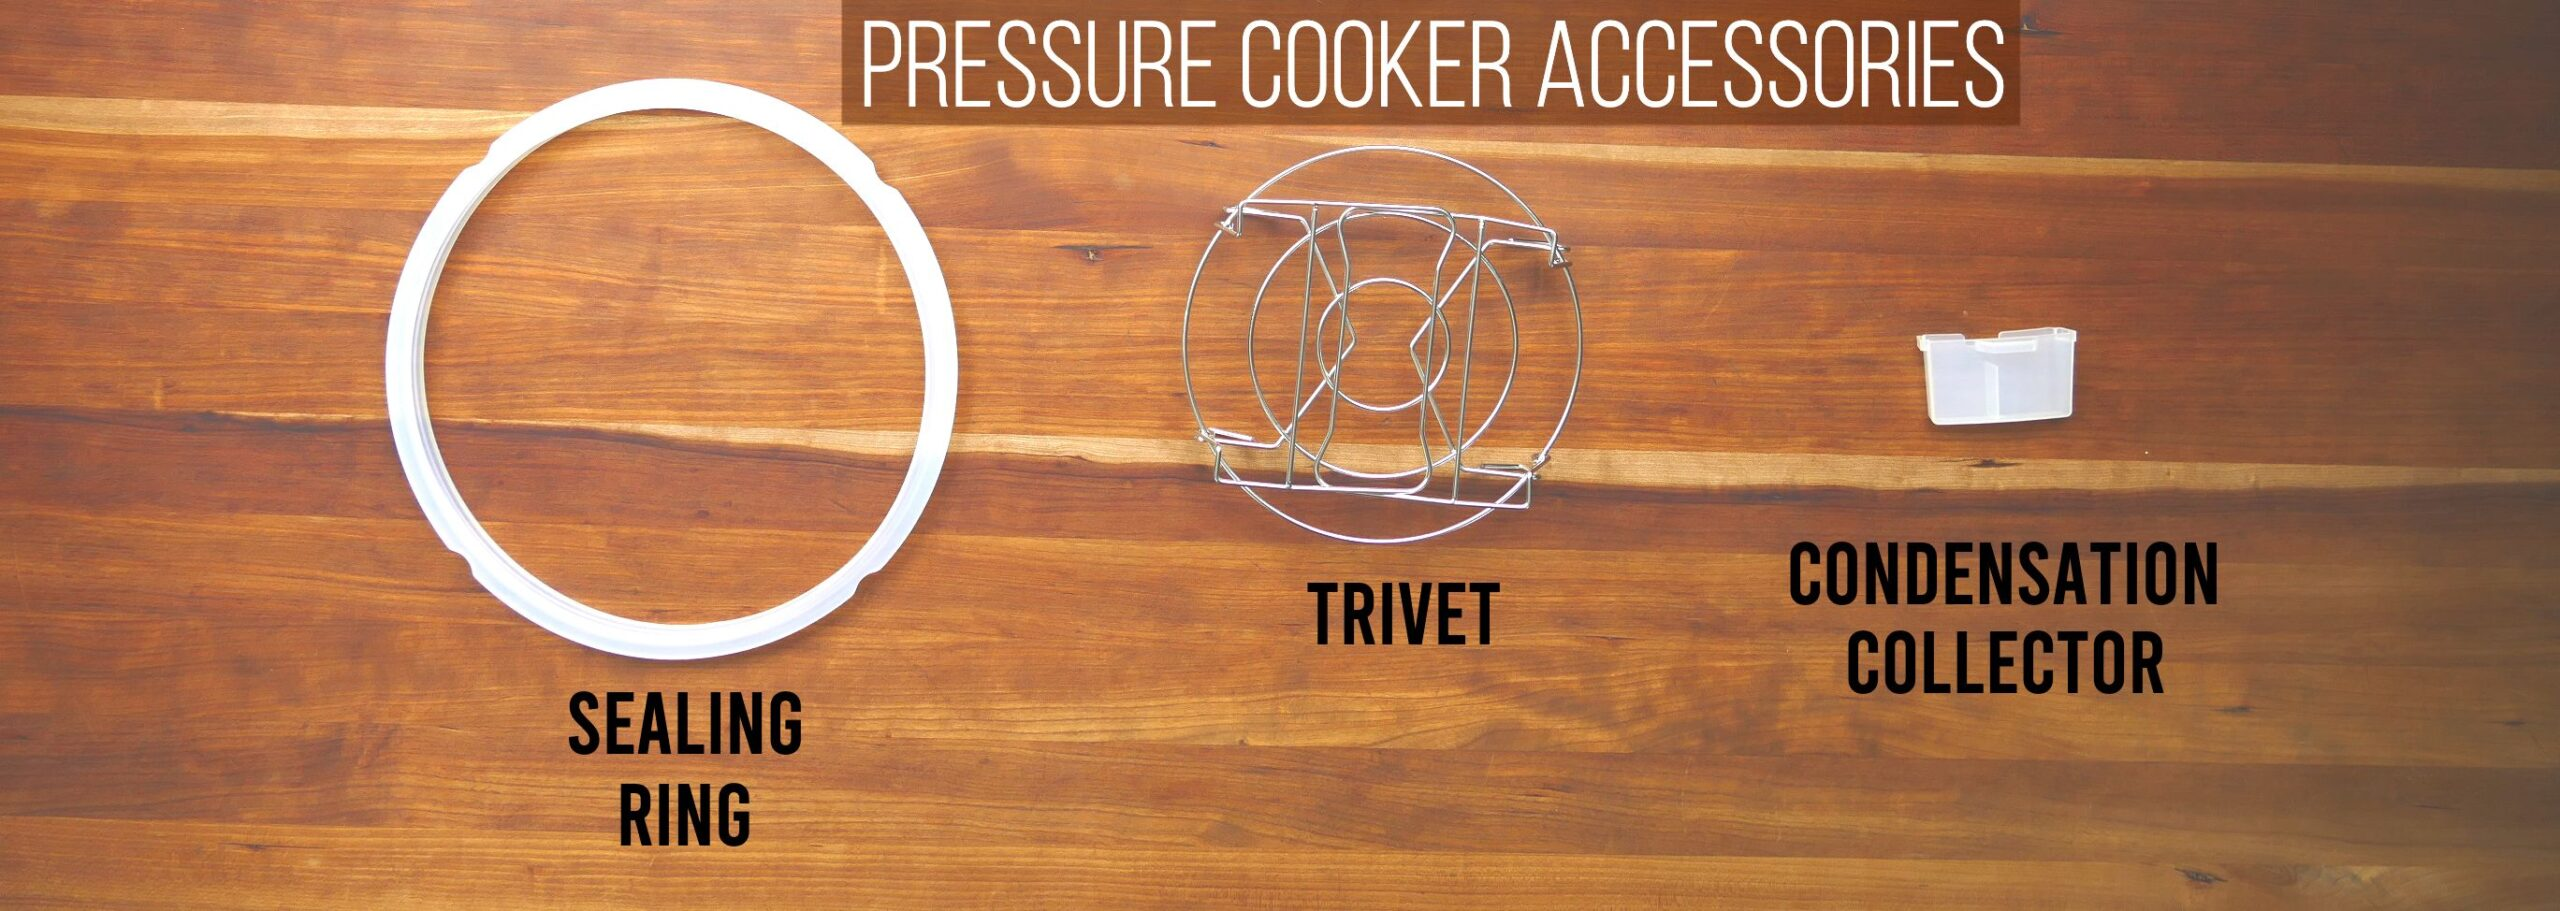 Pressure Cooker Accessories - sealing ring, trivet, condensation collector